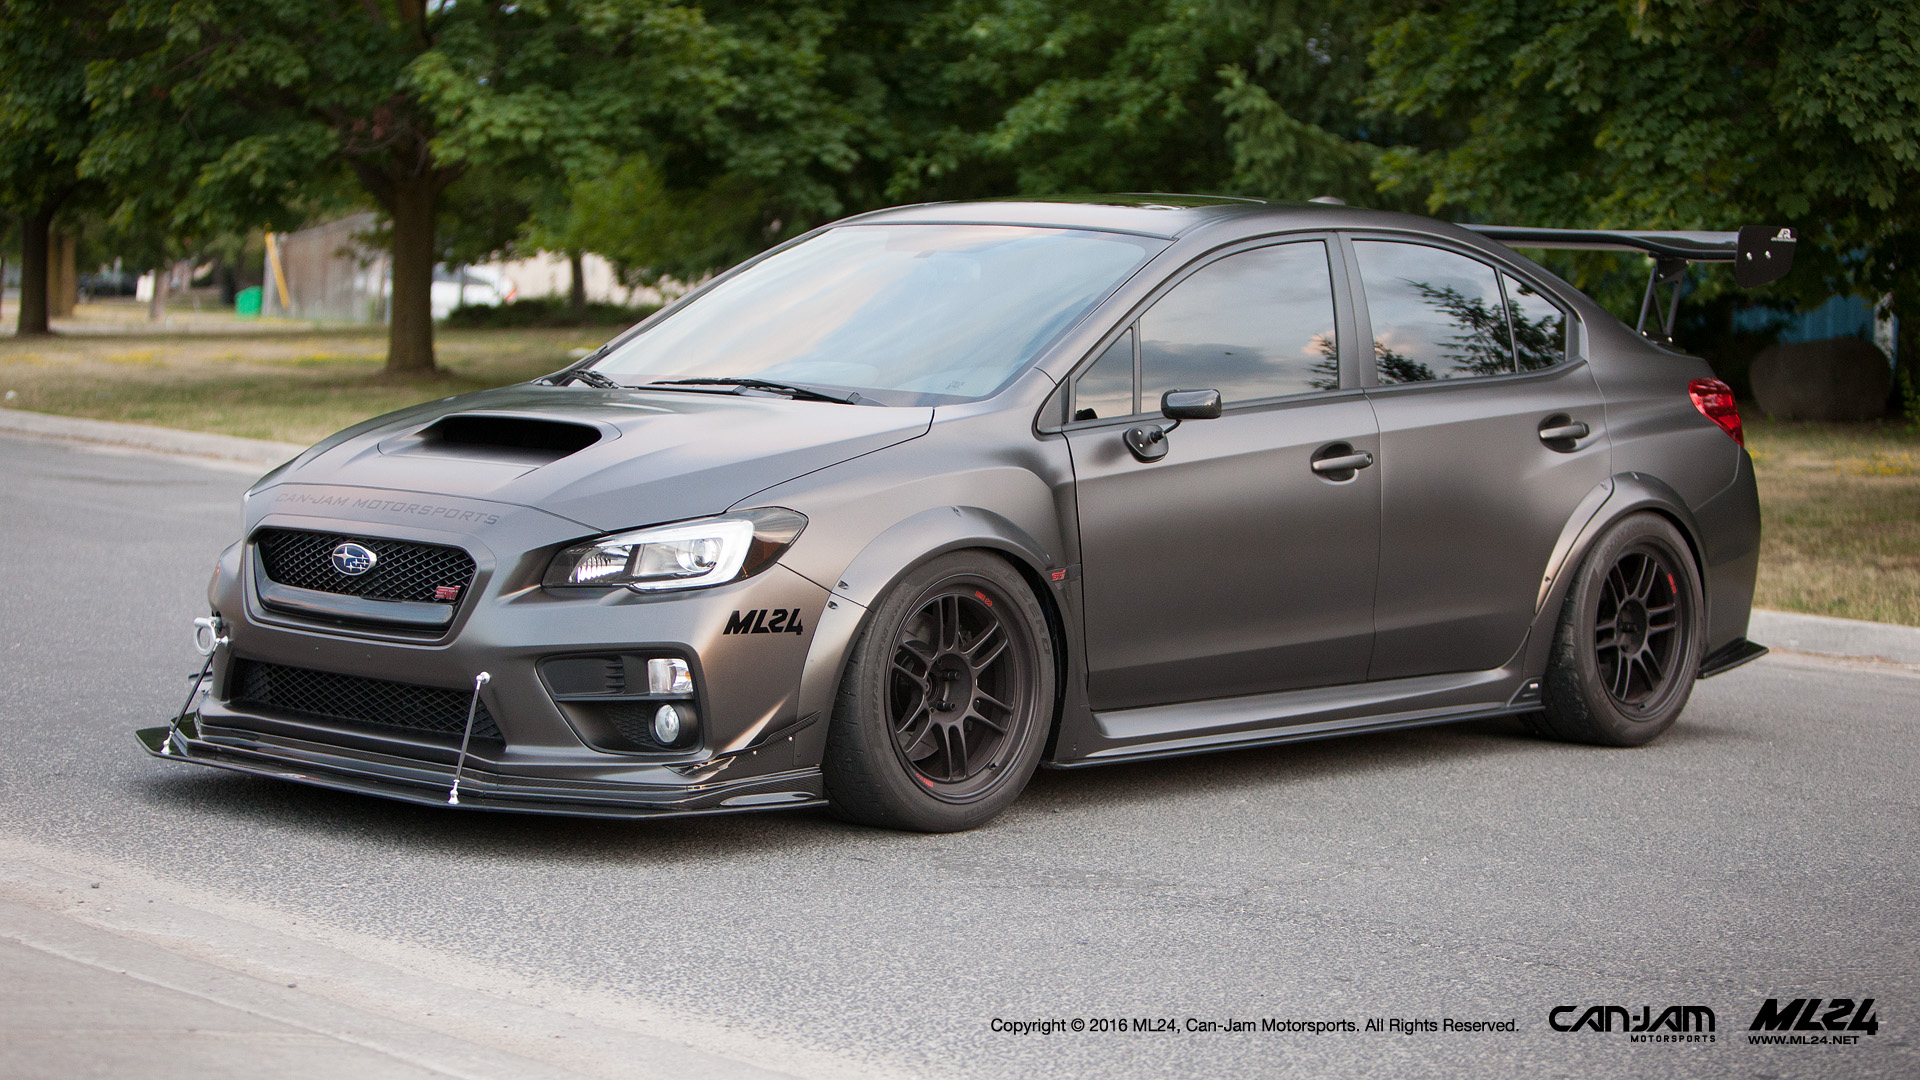 model rc car kits with 4862 Ml24 Wide Body Fender Flares 2015 Subaru Wrx Sti on Russian Doll 7 Nest moreover 14 Scale Ecm Paint Lettering additionally Build The Senna Mclaren as well Atlas Great Northern 10183 further Content.